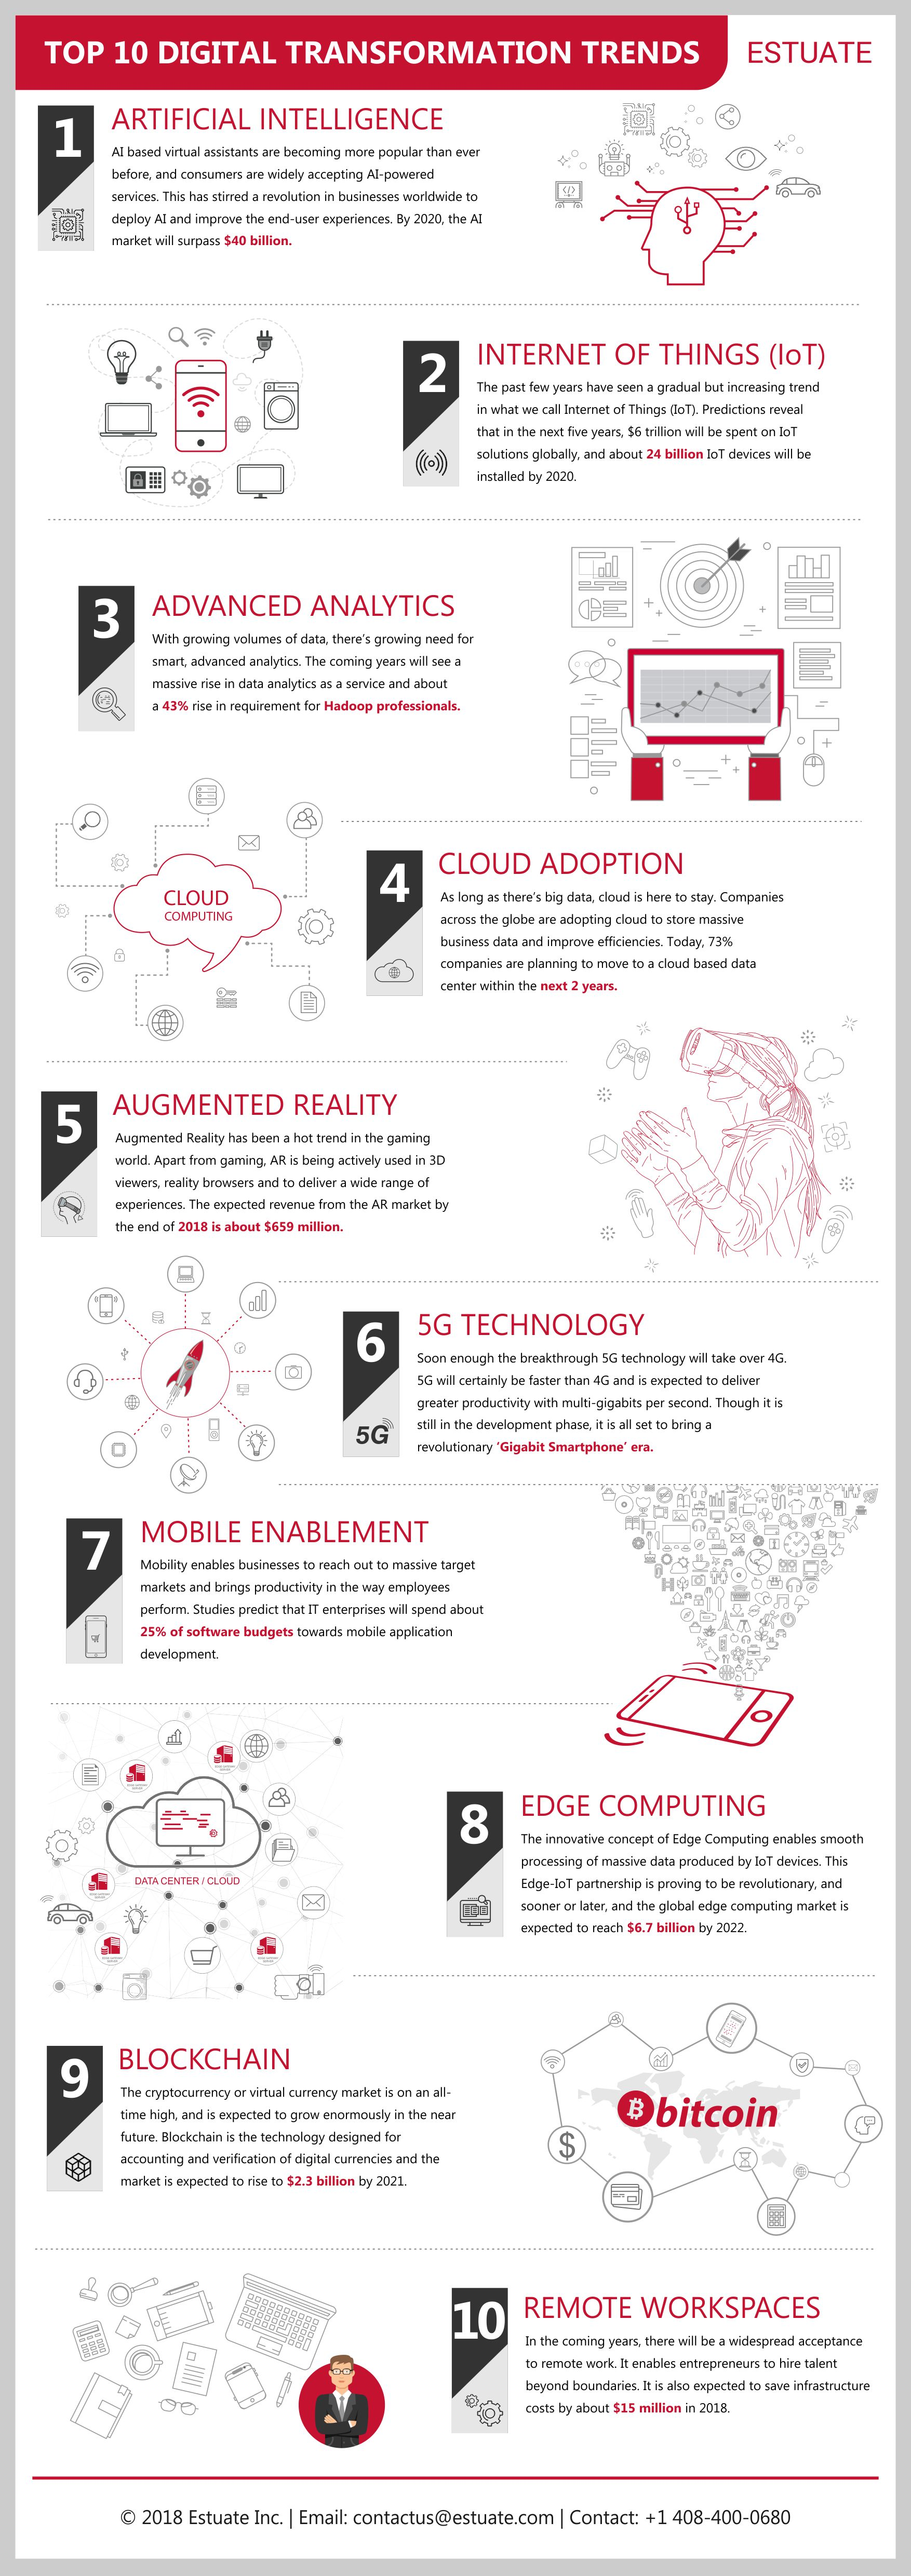 Top 10 Digital Transformation Trends for 2018 and Beyond [Infographic]